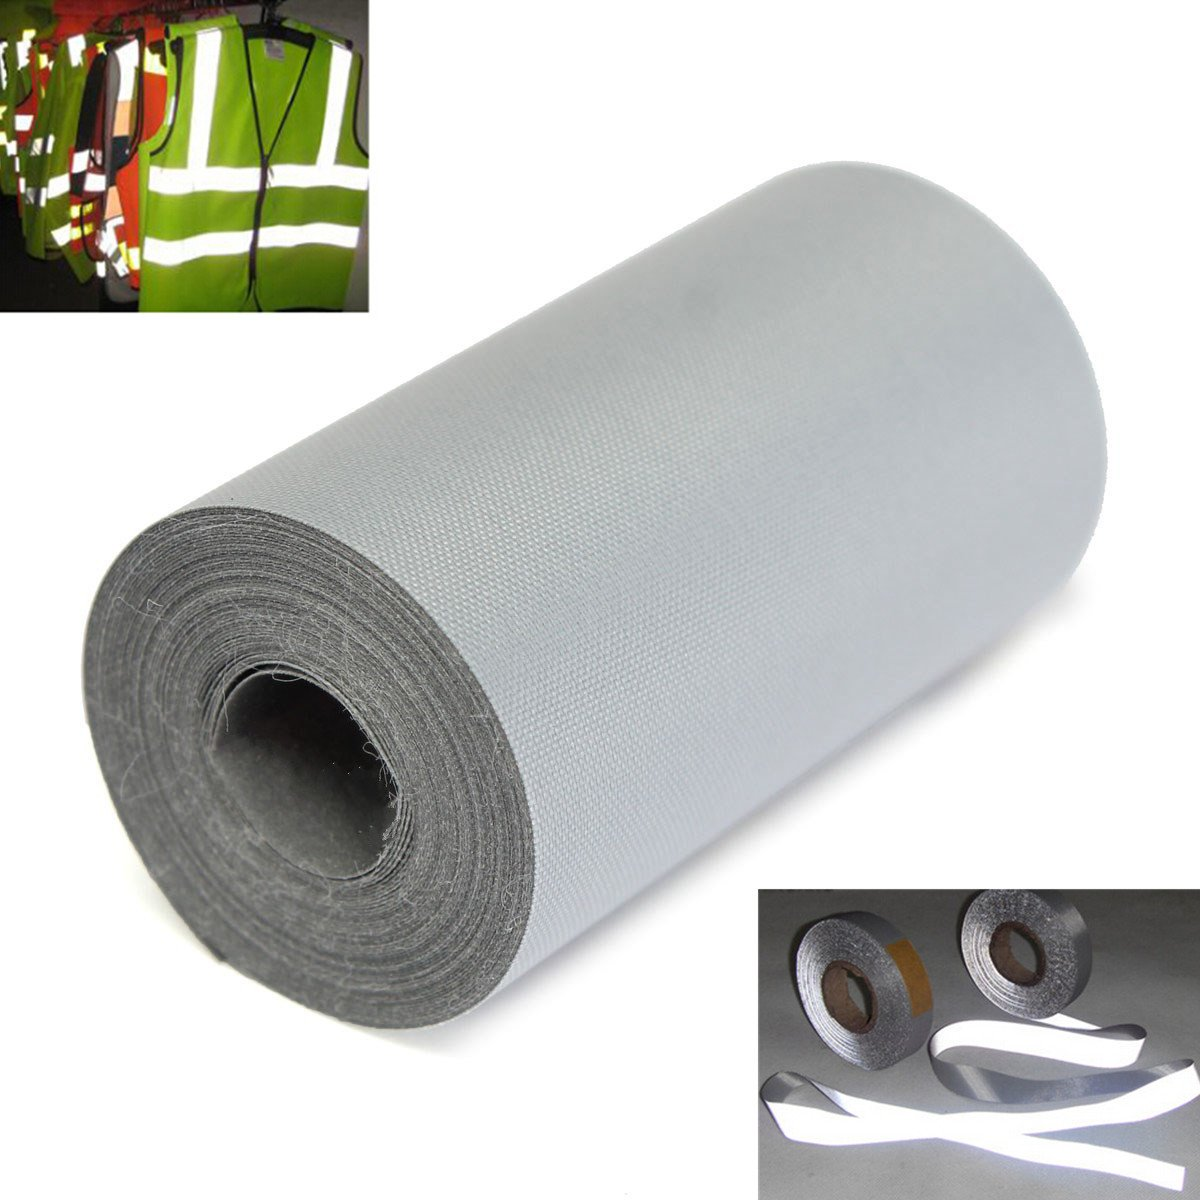 MONNY 300 x 5cm Car Reflective Silver Tape - sew On 2 Inch Trim Fabric Foot Safety Warning Conspicuity Tape Film